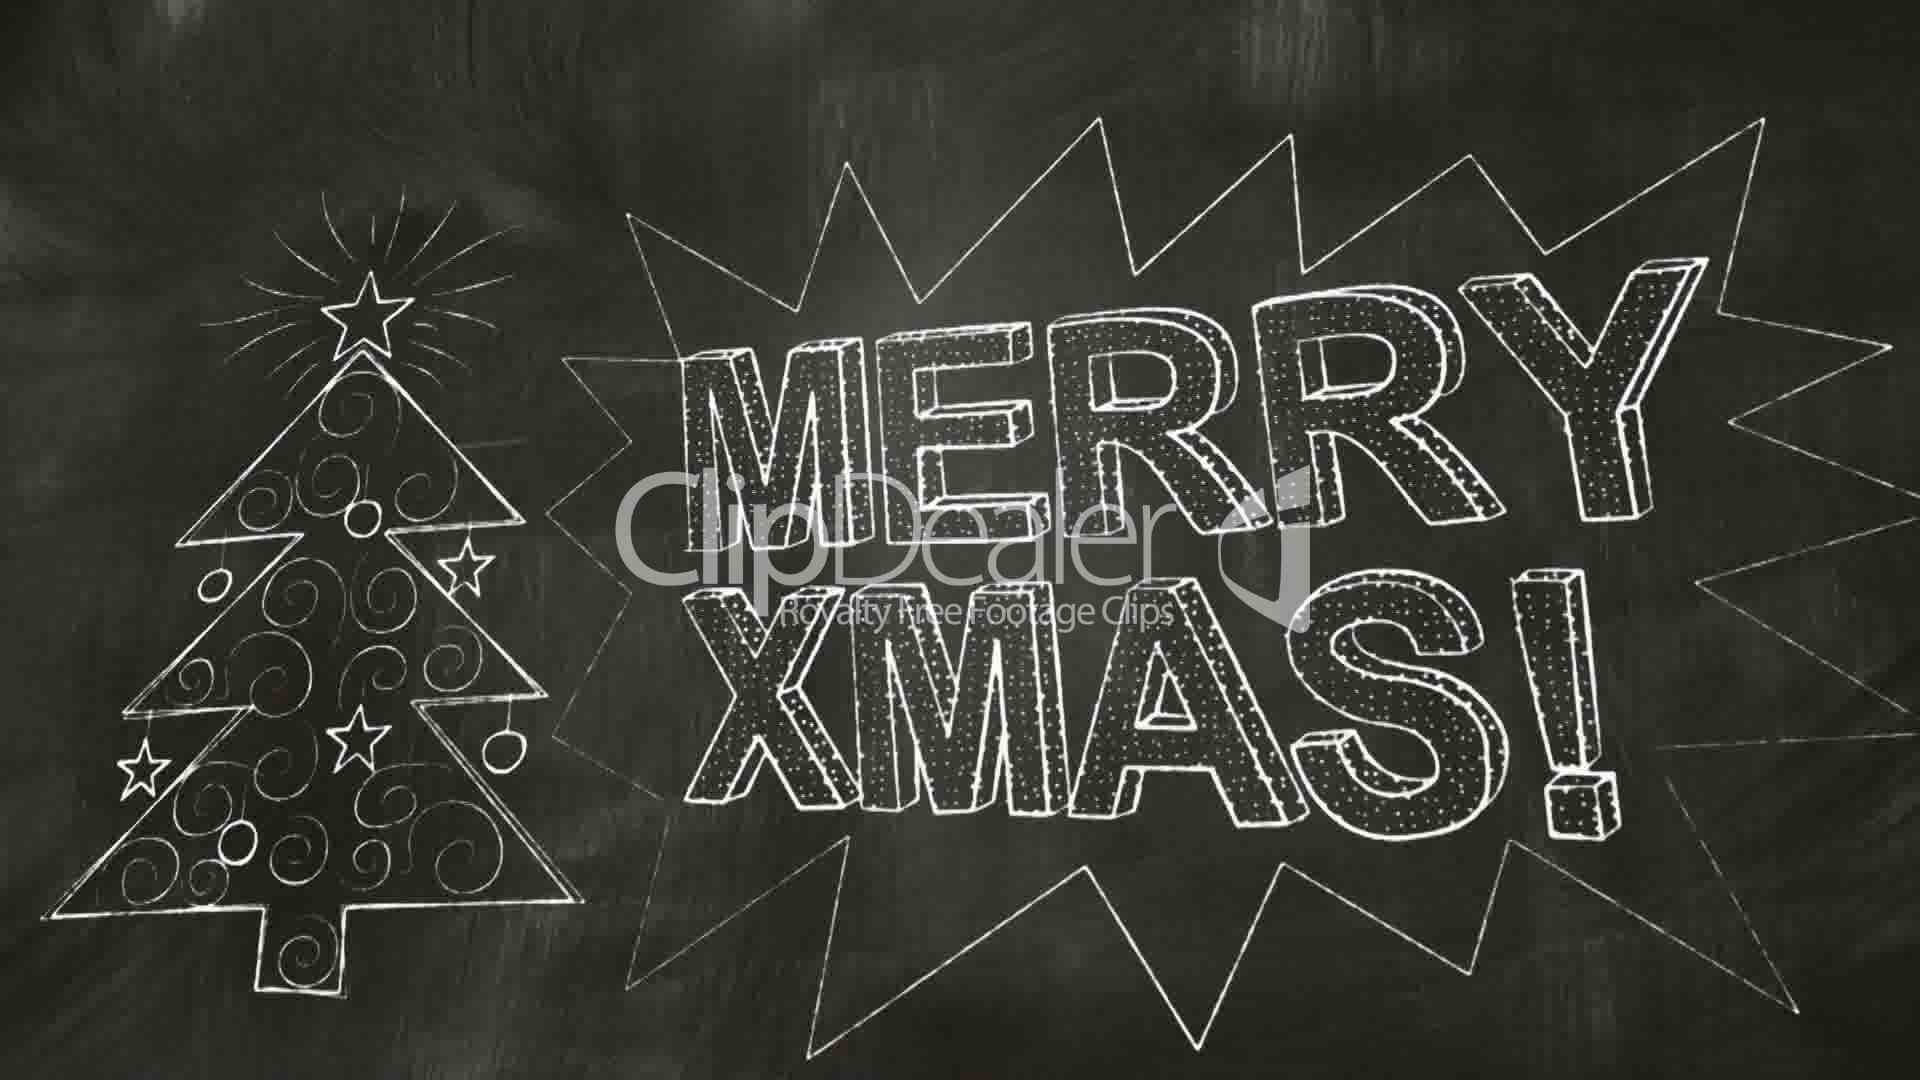 Drawing merry christmas greetings on blackboard royalty free video drawing merry christmas greetings on blackboard royalty free video and stock footage m4hsunfo